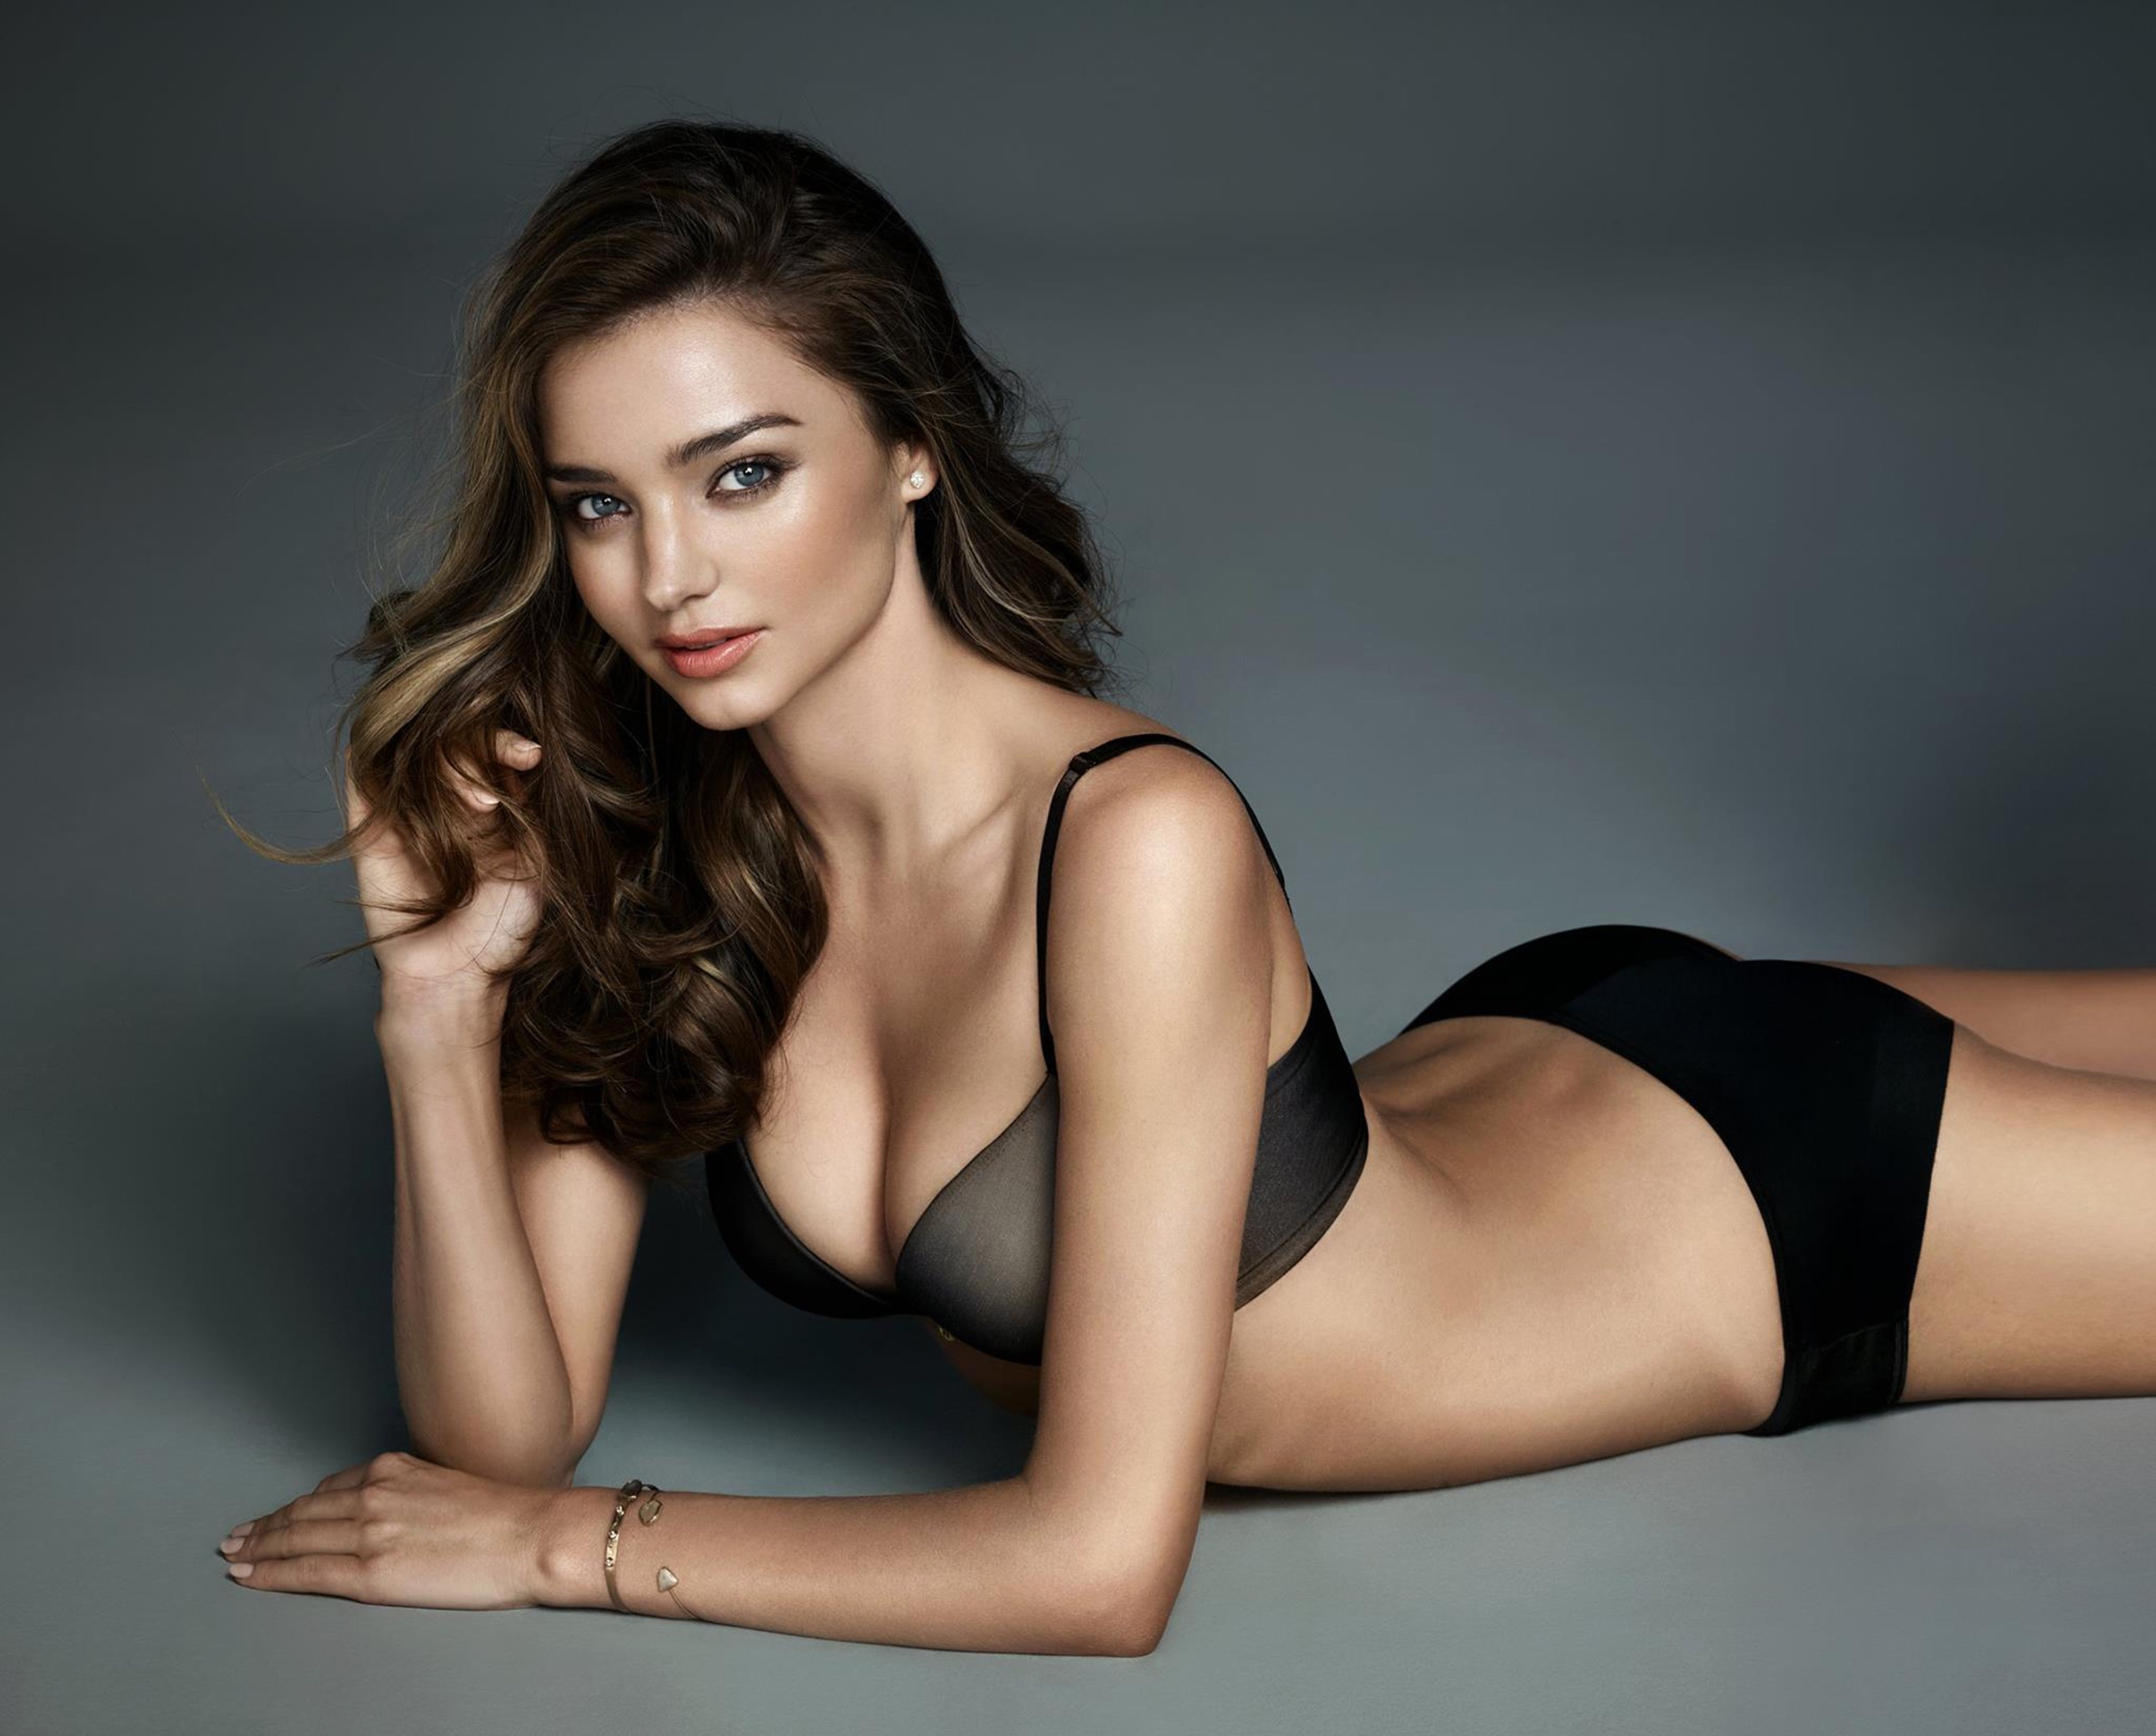 Miranda kerr wonderbra 2 - 1 part 10